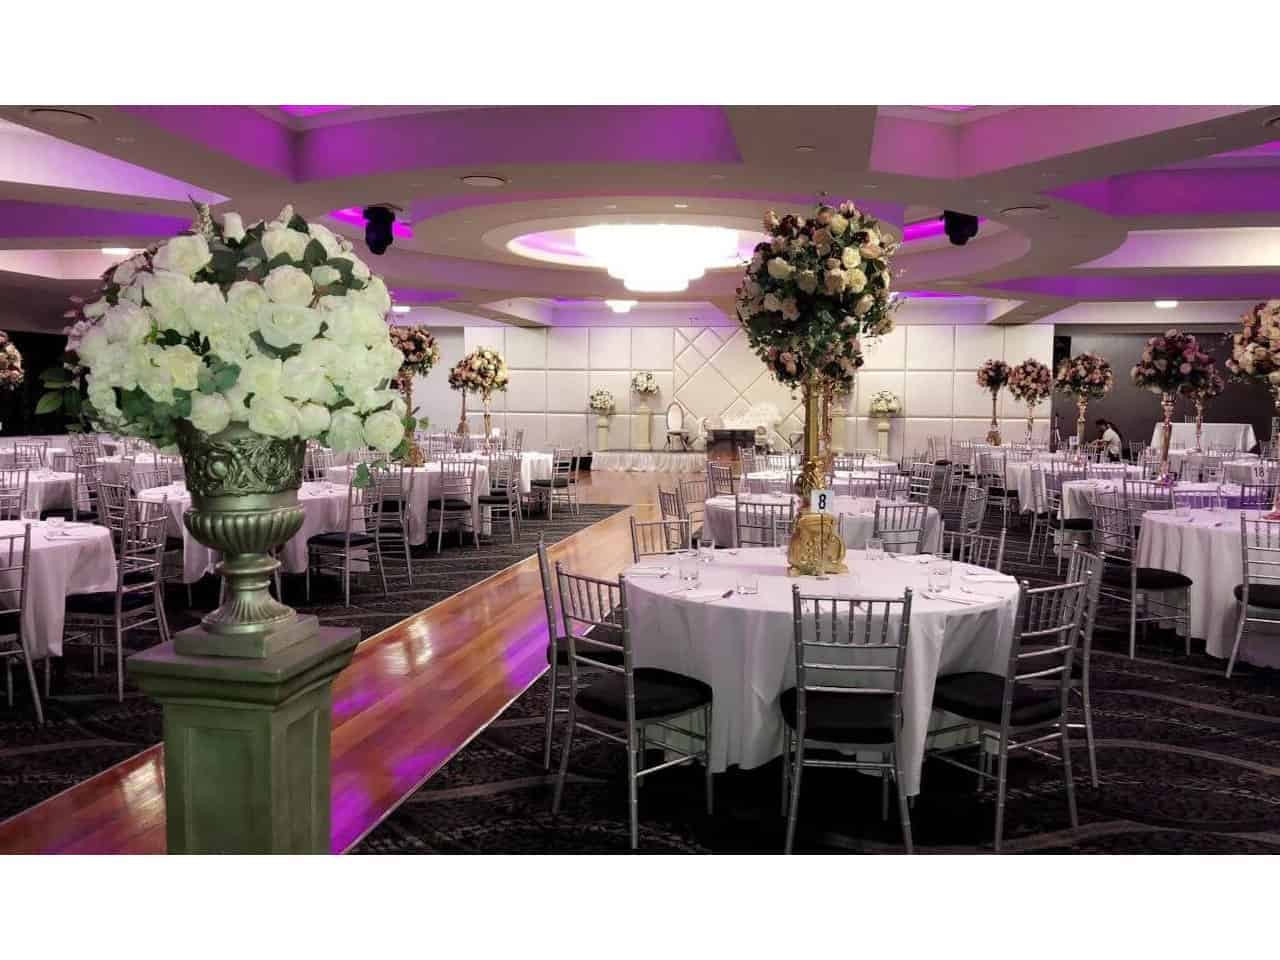 Specialist wedding venue